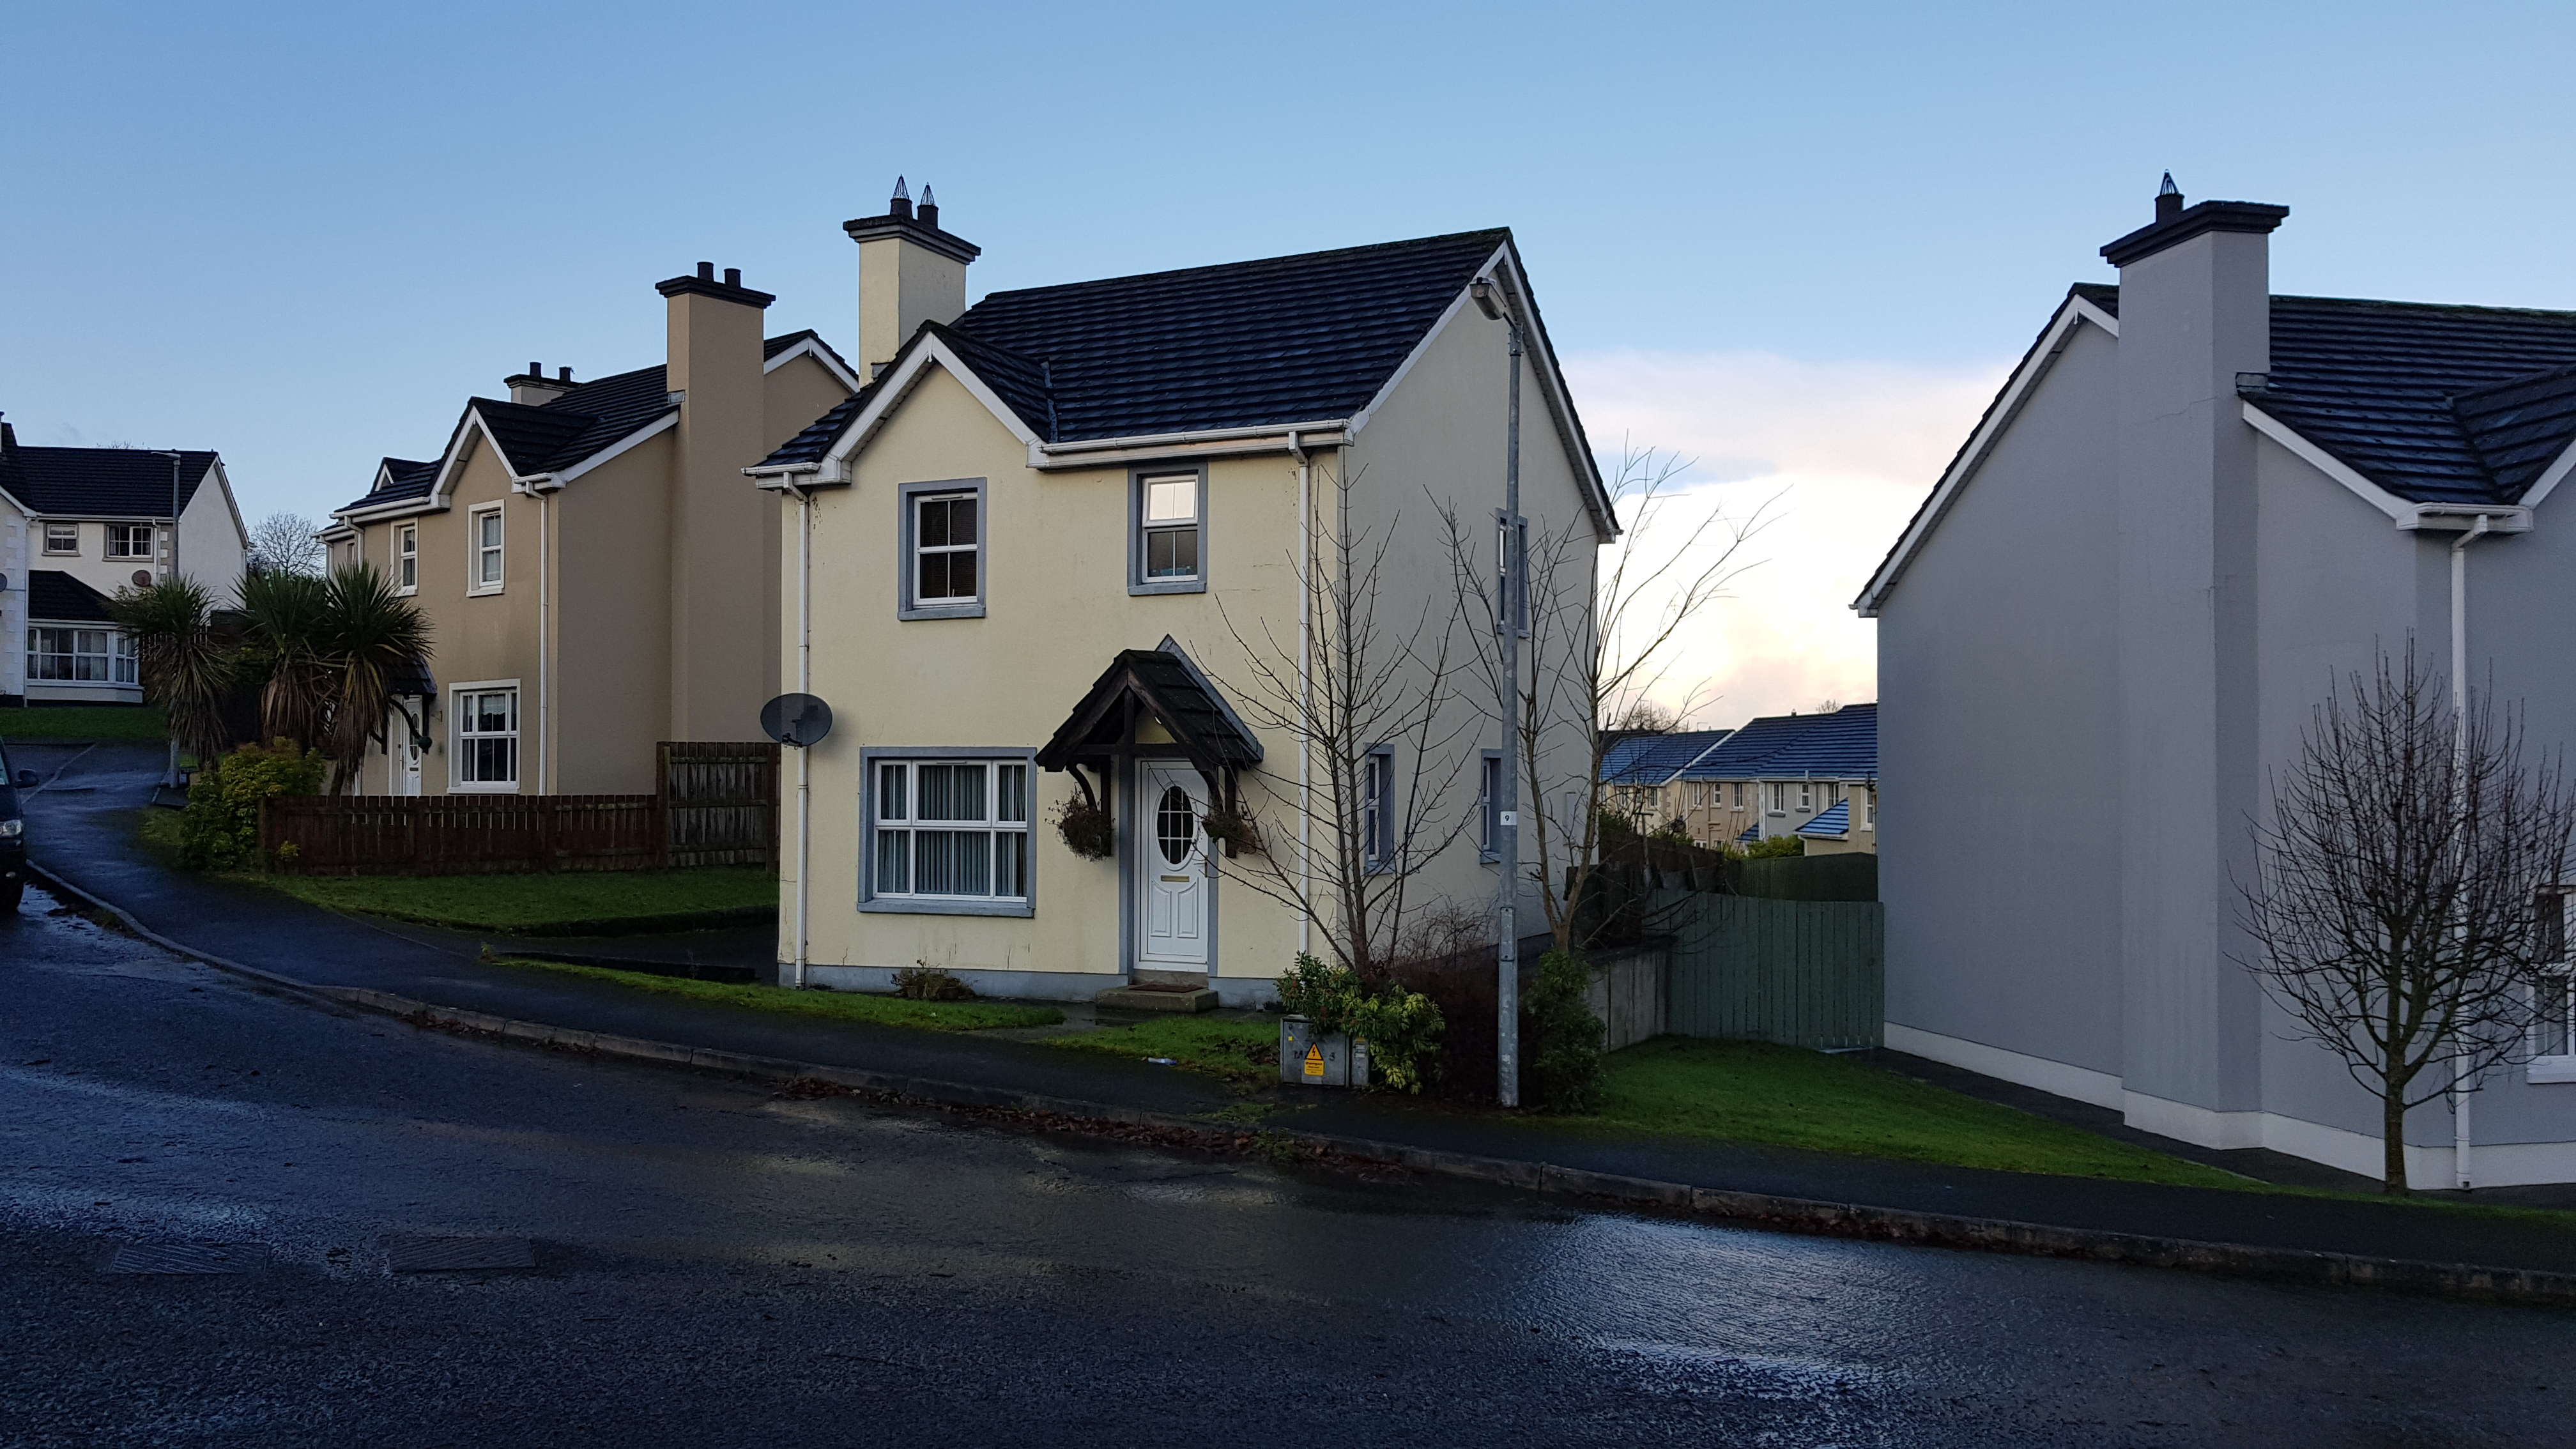 19 St. Jude's Court, Lifford, Co. Donegal, F93 C3FN